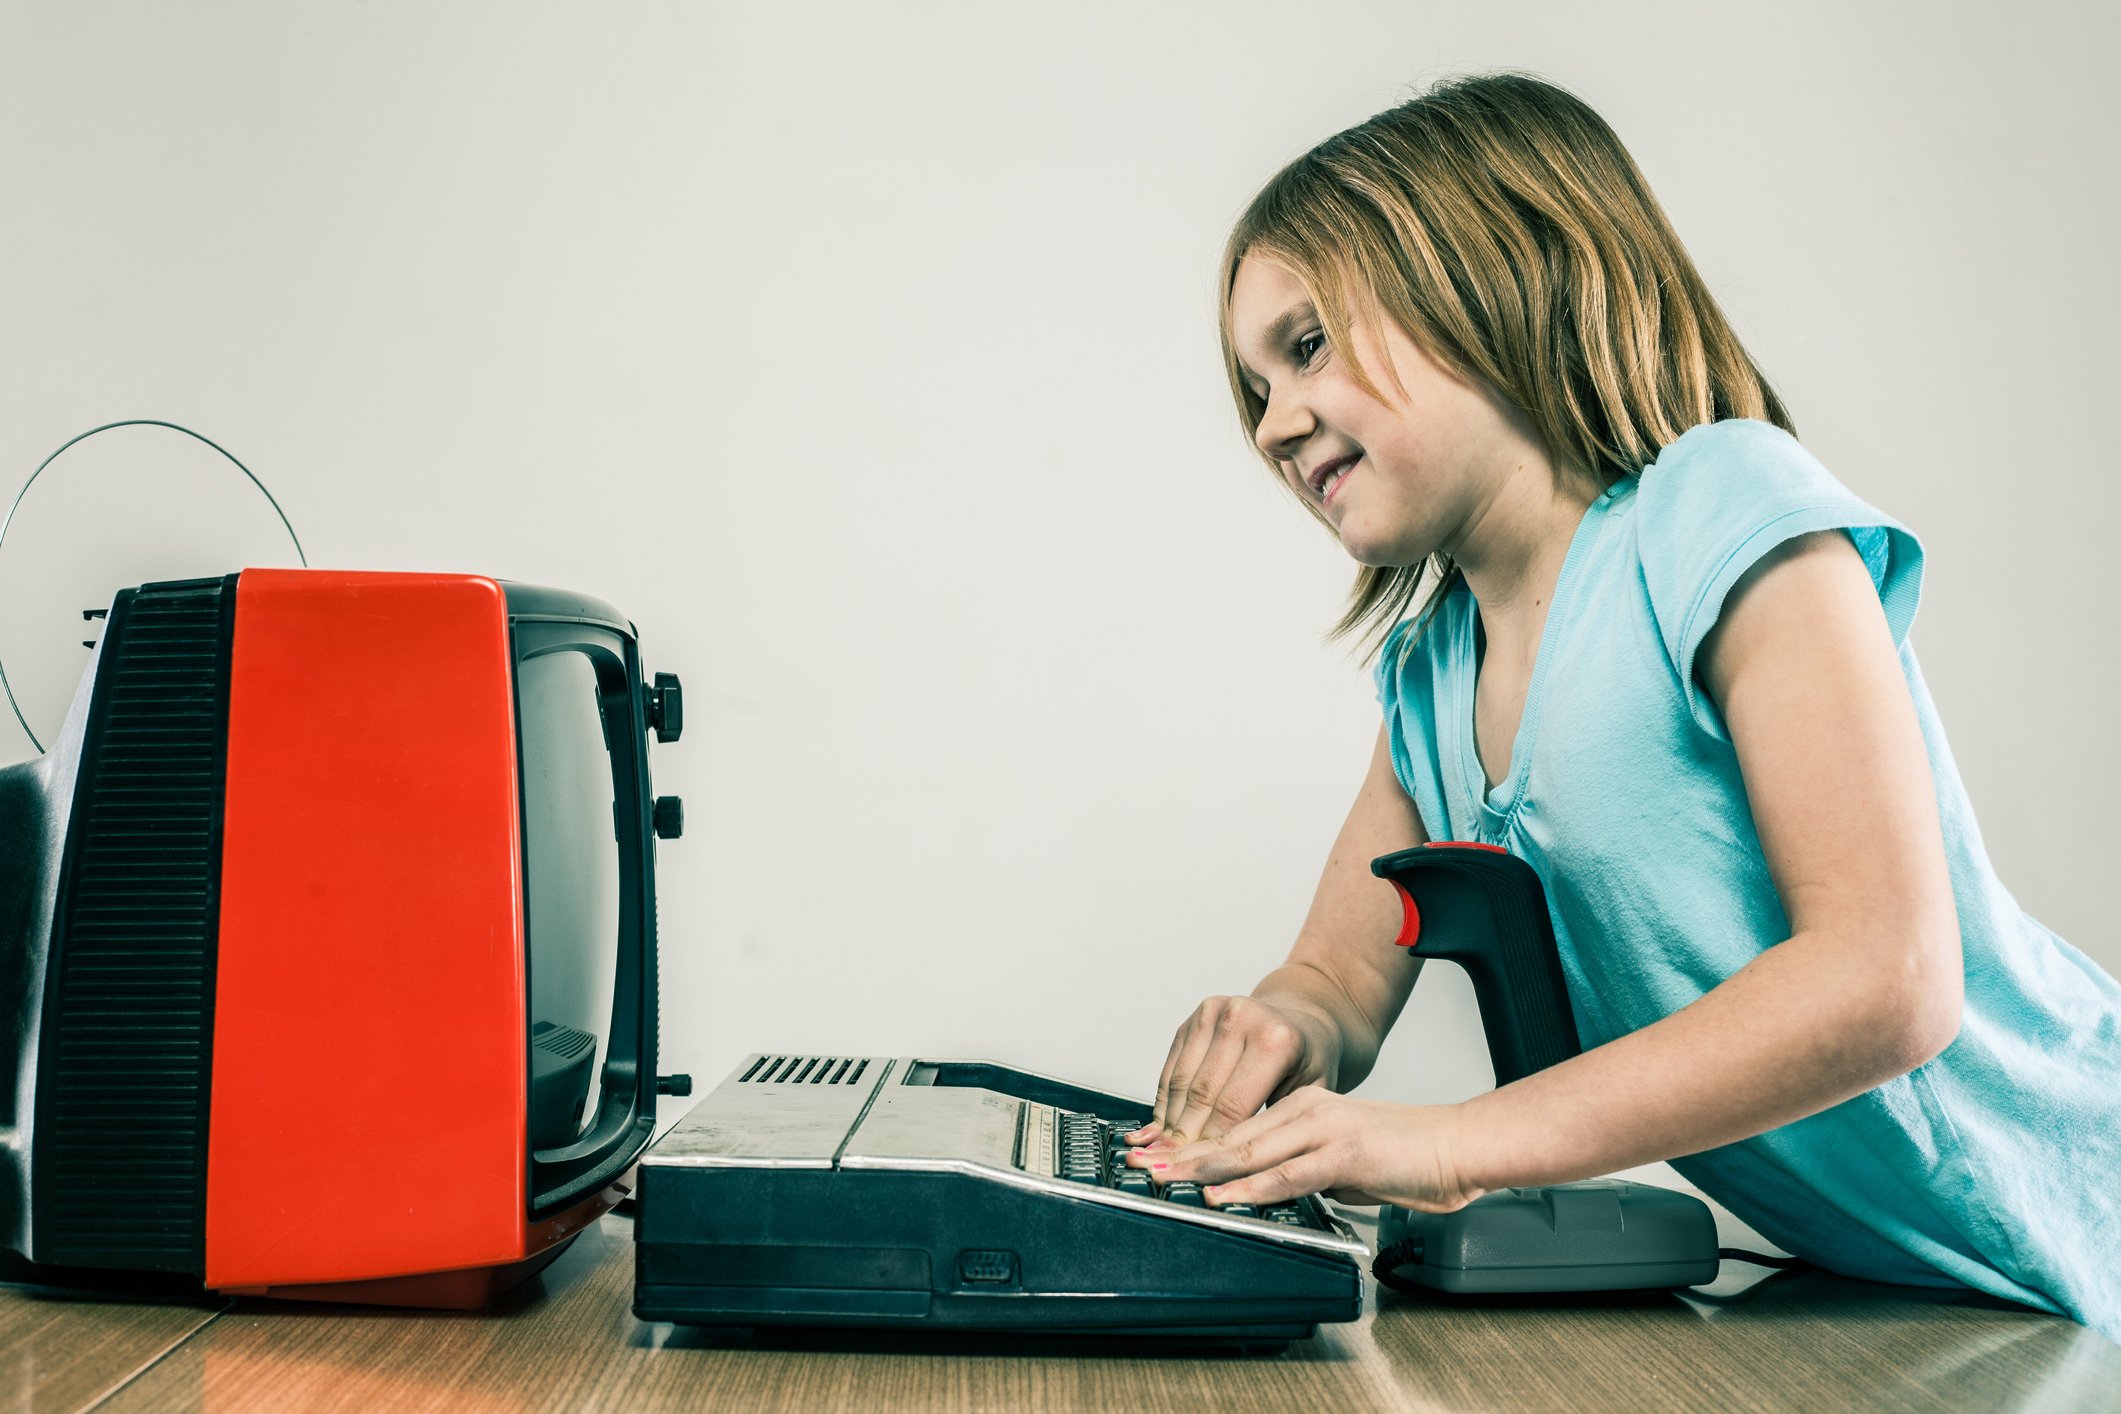 A little girl playing vintage video games from the 1980s on a retro TV and joystick controller